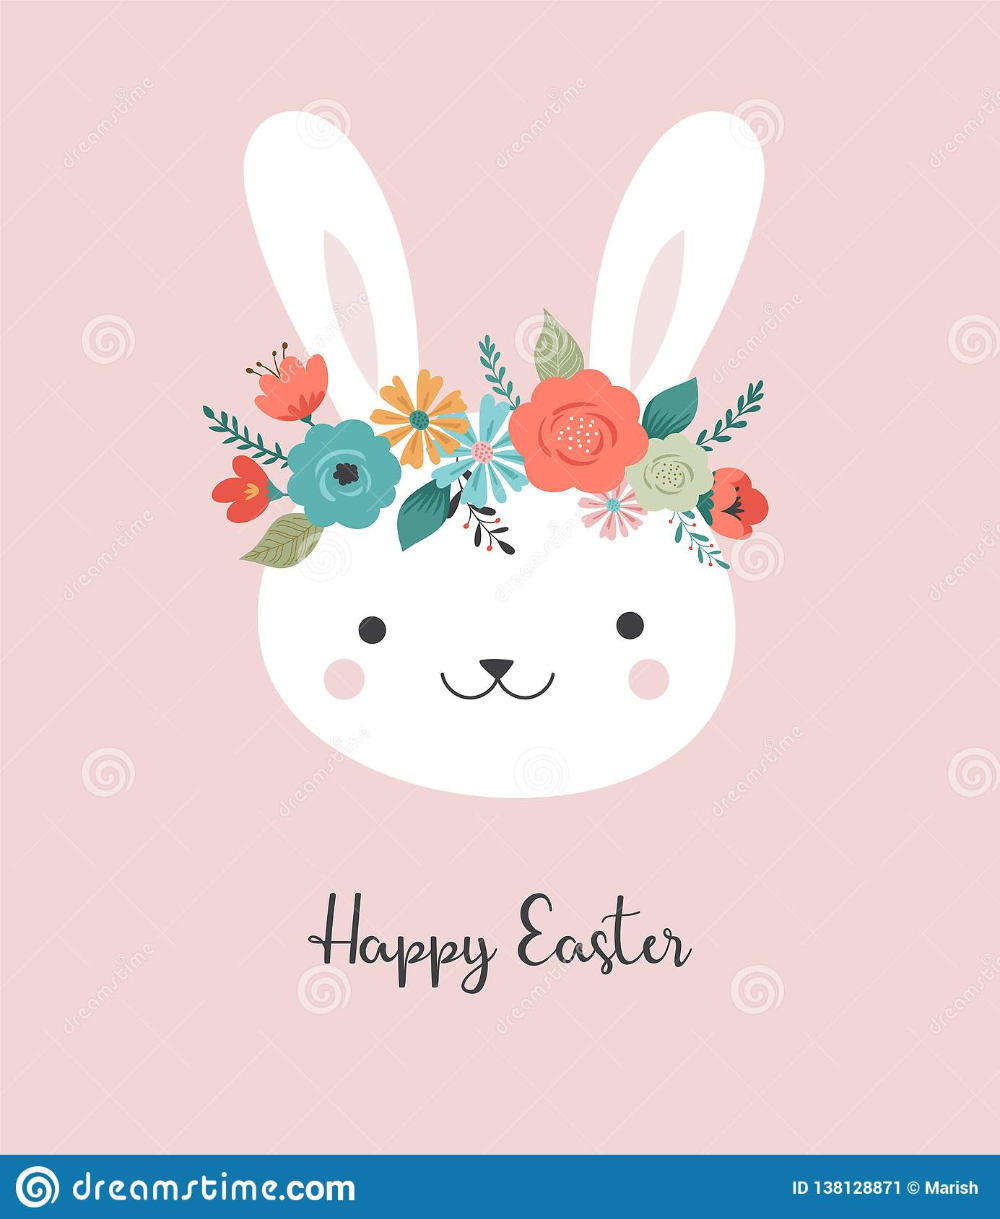 Happy Easter Card Coloring Page Easter Coloring Pages Easter Cards Easter Printables Free